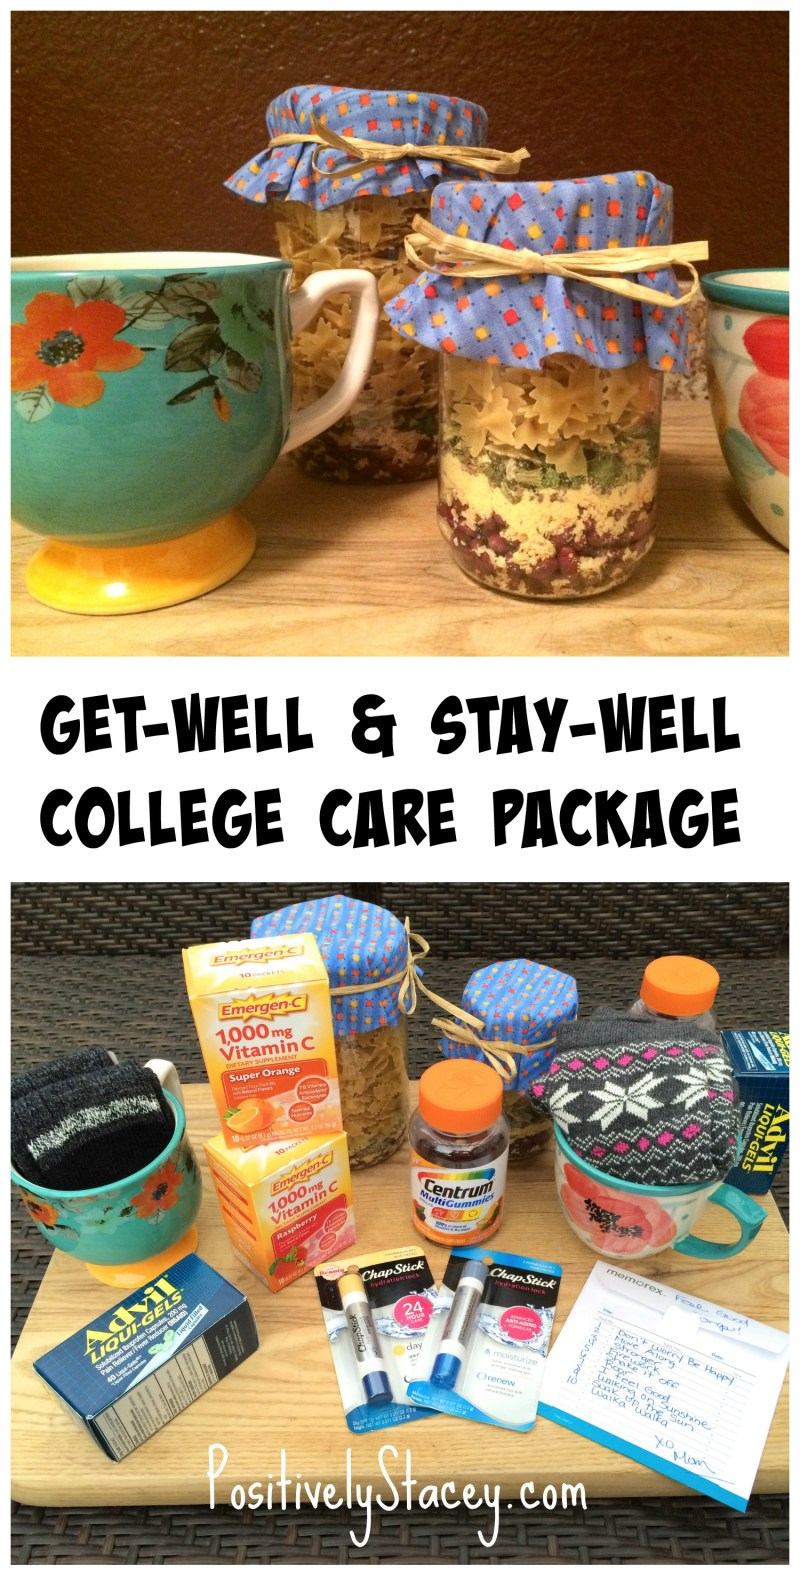 How to put together a Get-Well & Stay-Well College Care Package